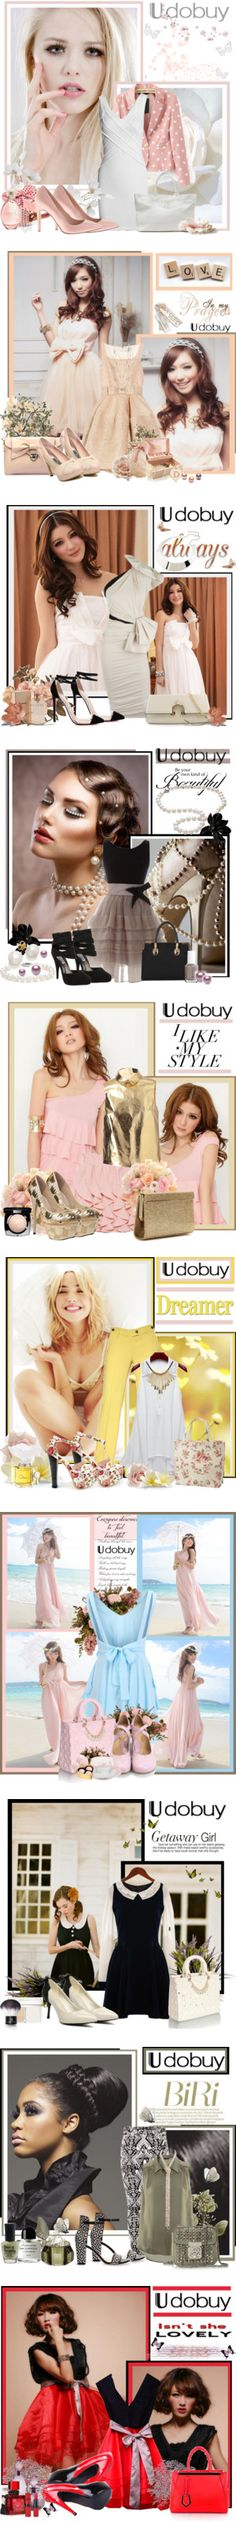 """UDOBUY¤1¤"" by sneky ❤ liked on Polyvore"